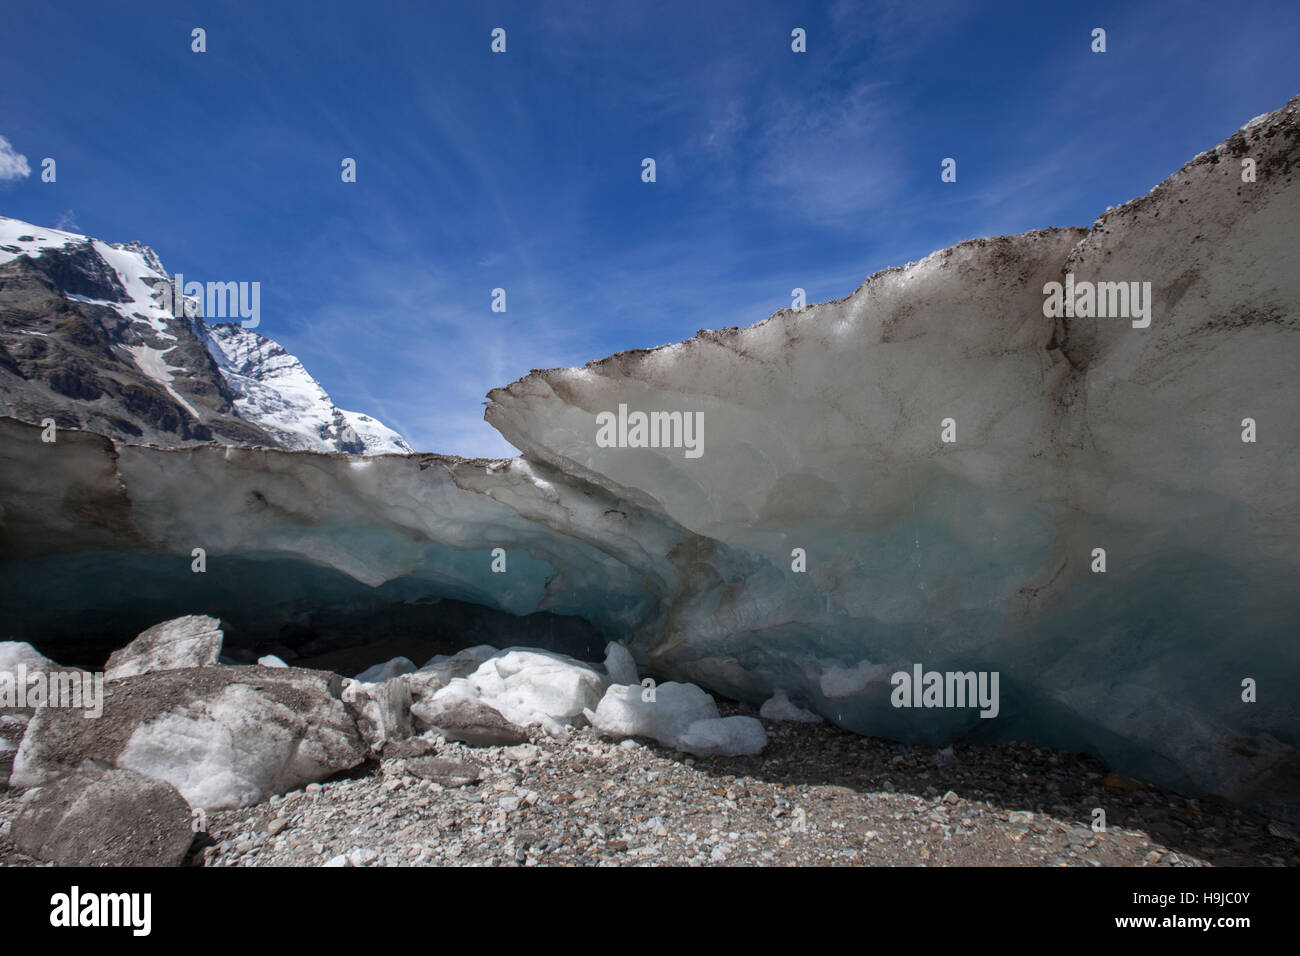 Quick melting mountain glacier due to the global warming. - Stock Image